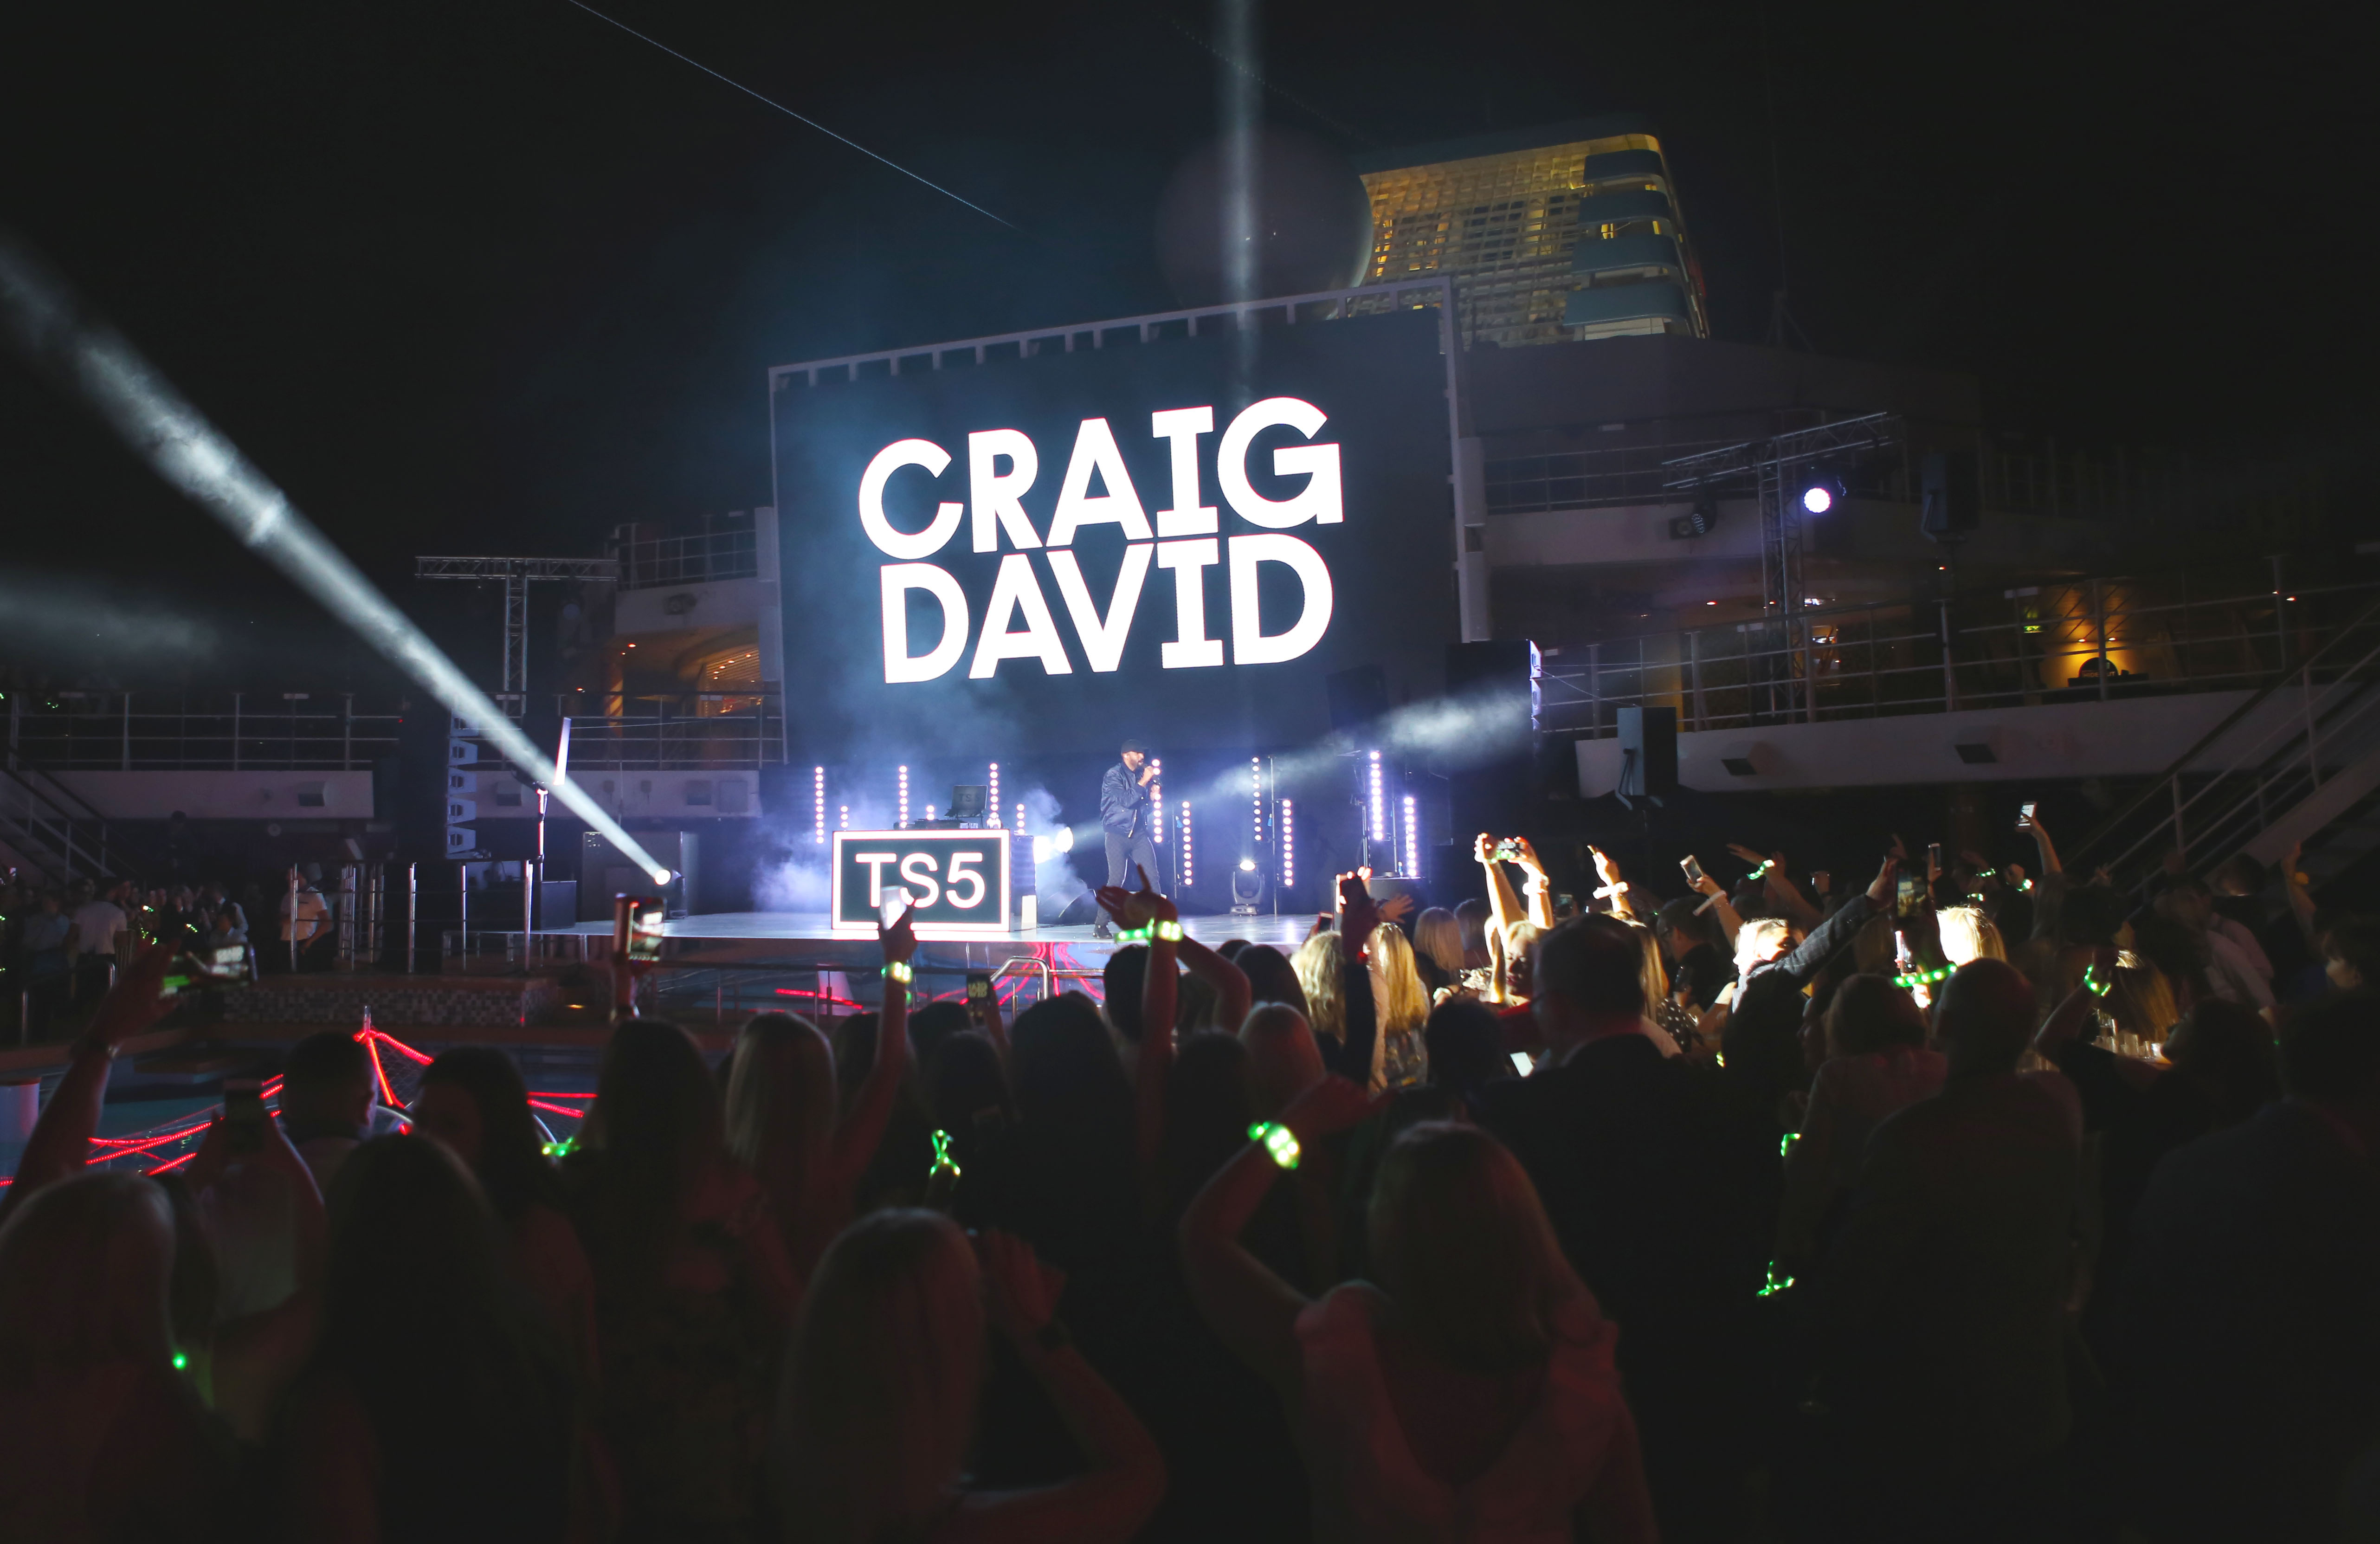 craig david marella cruise